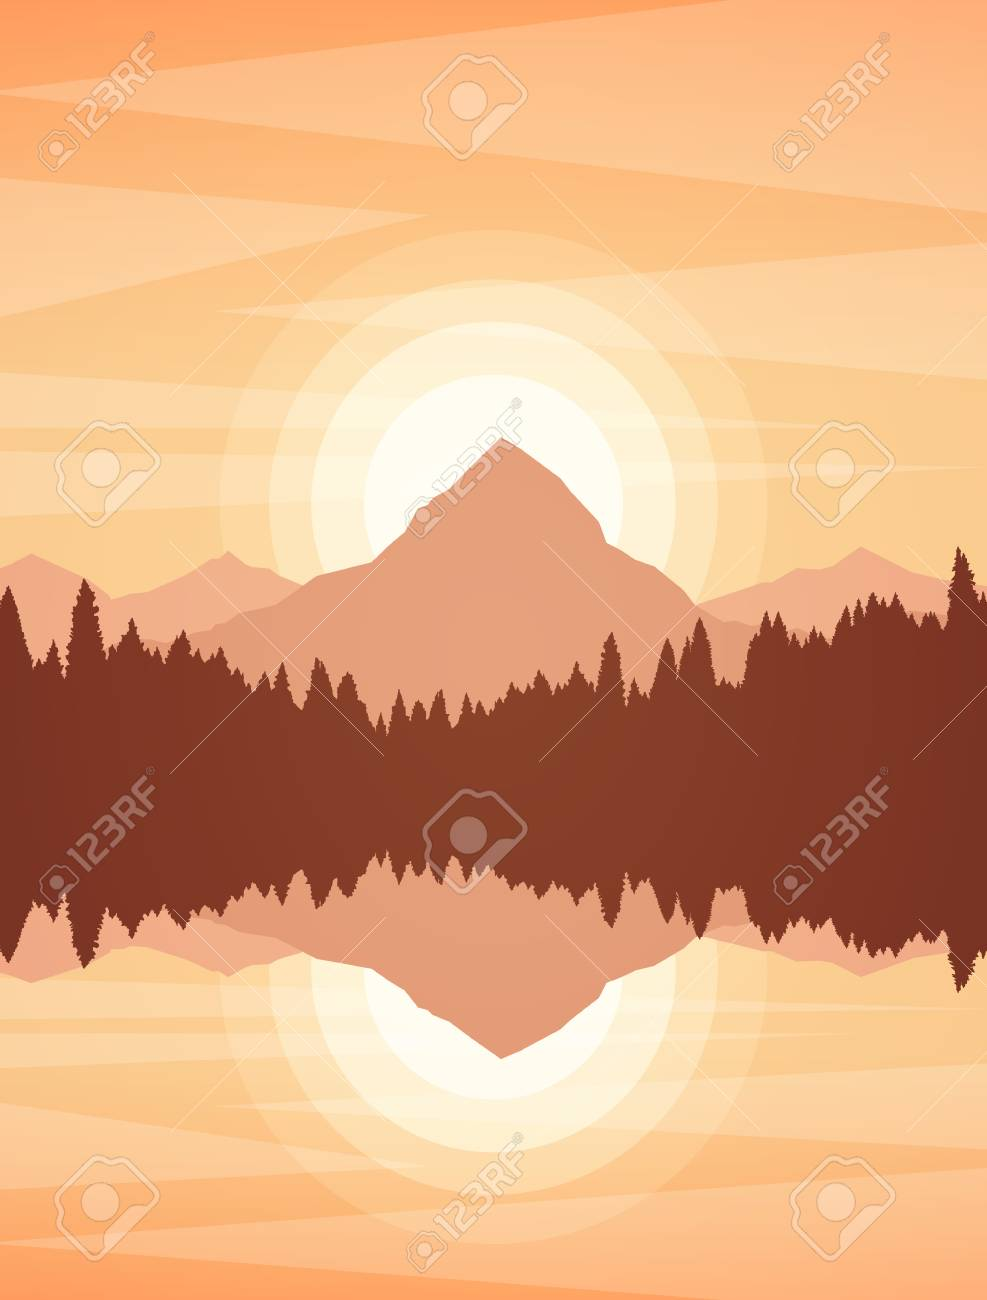 Vector illustration: Sunset or Sunrise Mountain Lake landscape with pine forest and reflection. - 124598697